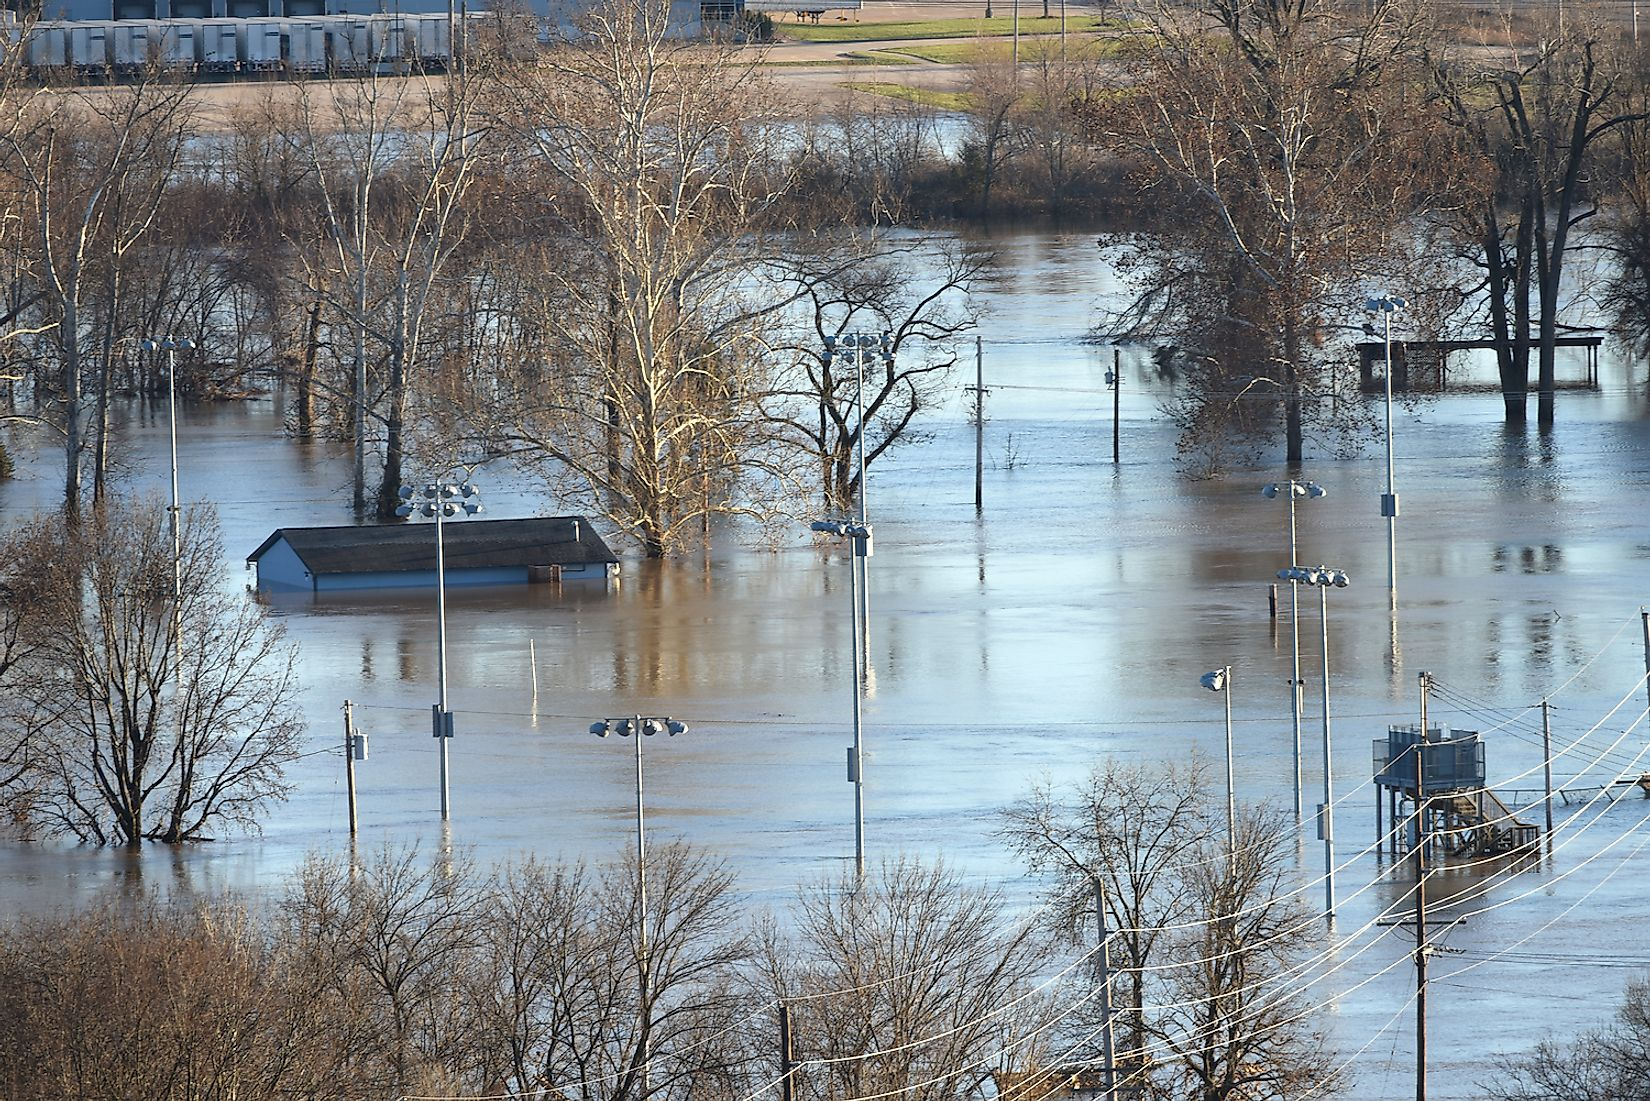 Flood waters nearly submerge house in Valley Park in old town Fenton, Valley Park, Missouri. Image credit: Gino Santa Maria/Shutterstock.com